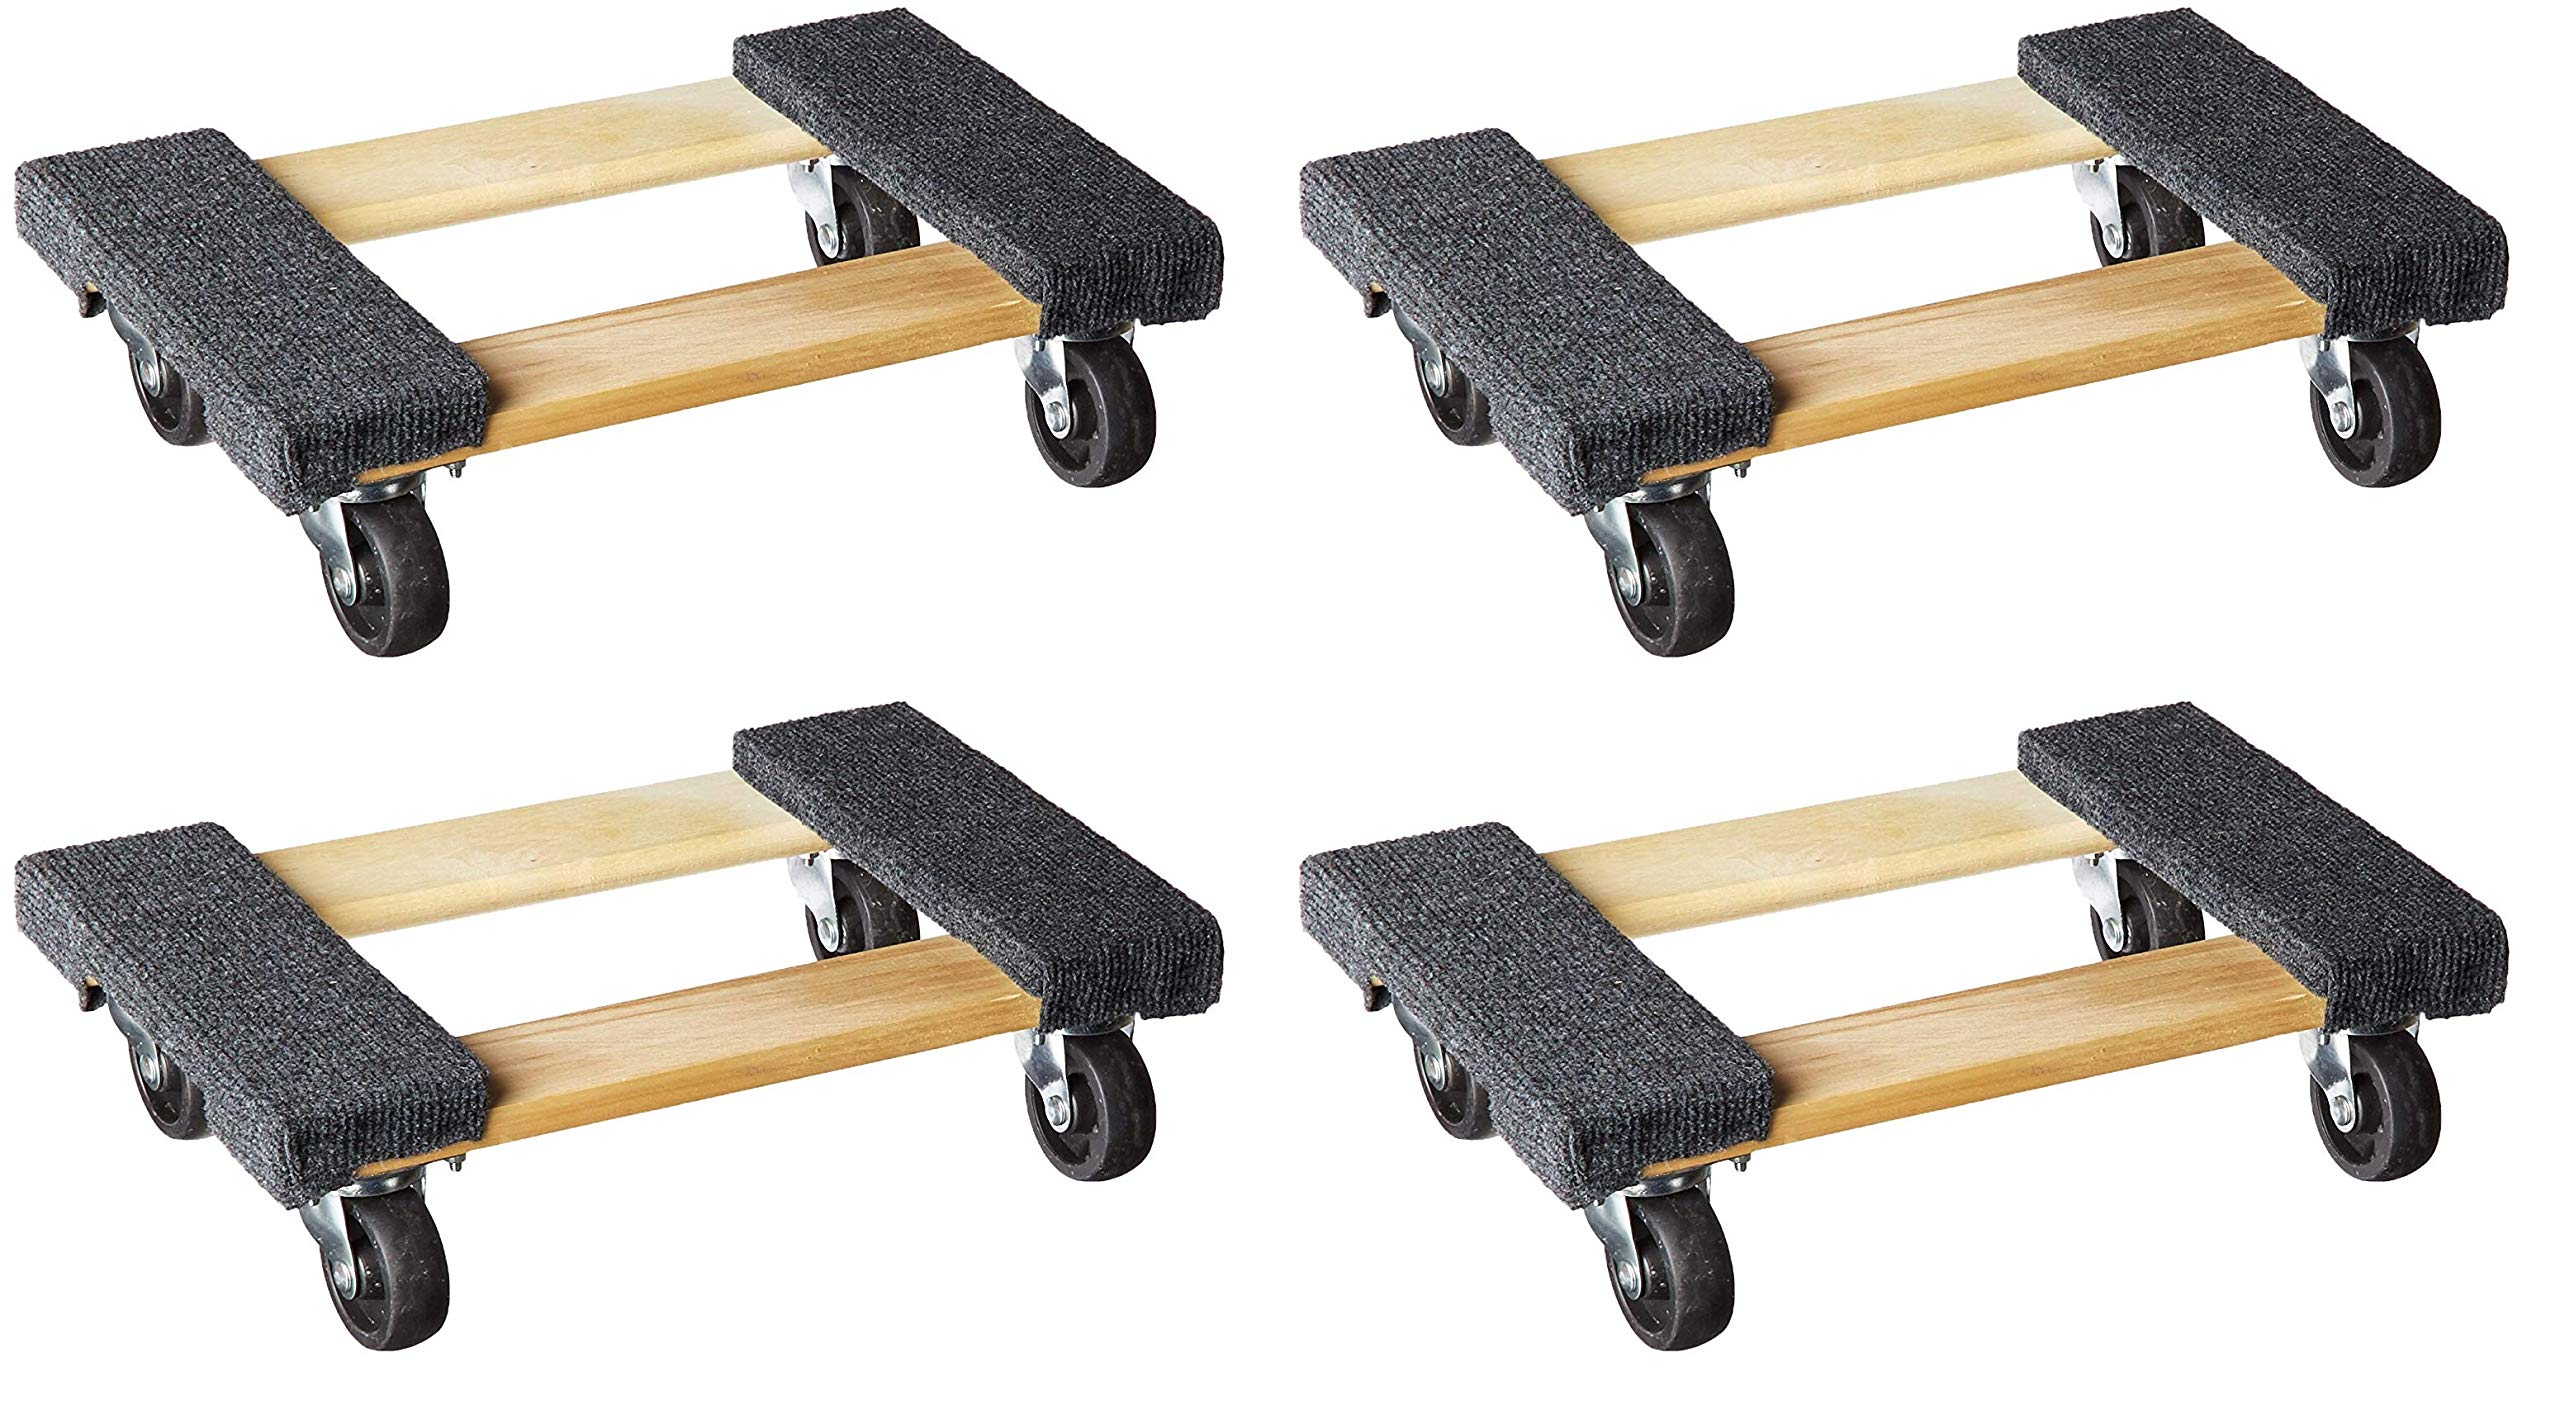 "Haul Master 93888 Mover's Dolly 1000 lbs. Weight Capacity, 18'' L x 12-1/4'' W, 12-14"", Grey/Hardwood (Pack of 4)"